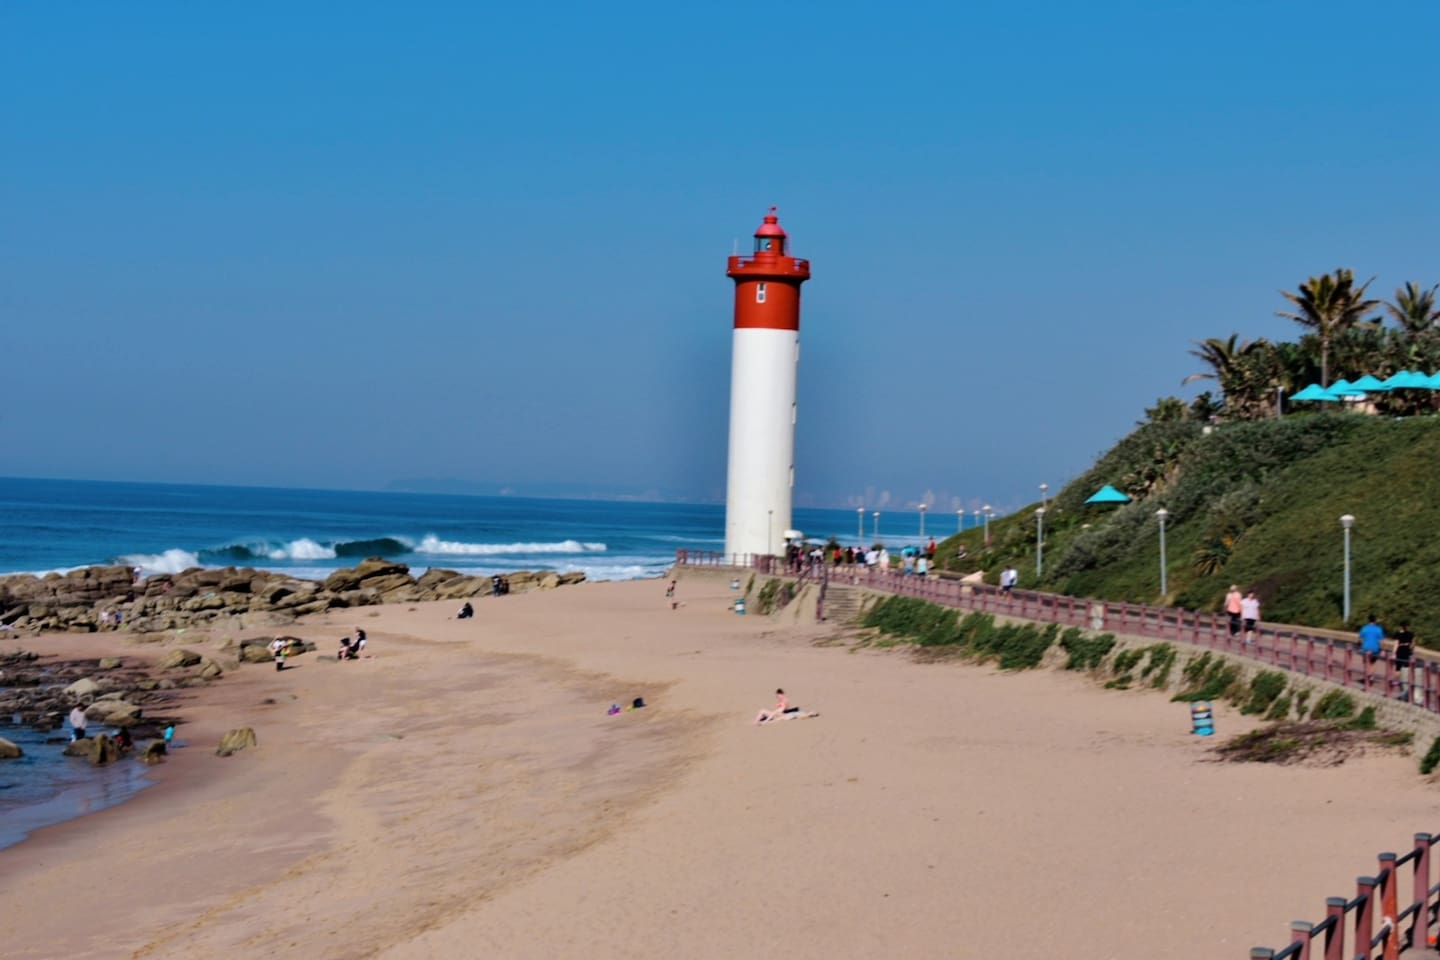 This is a picture of the famous lighthouse on Umhlanga rocks beach, the beach is within a 3 - 5 minutes walking range